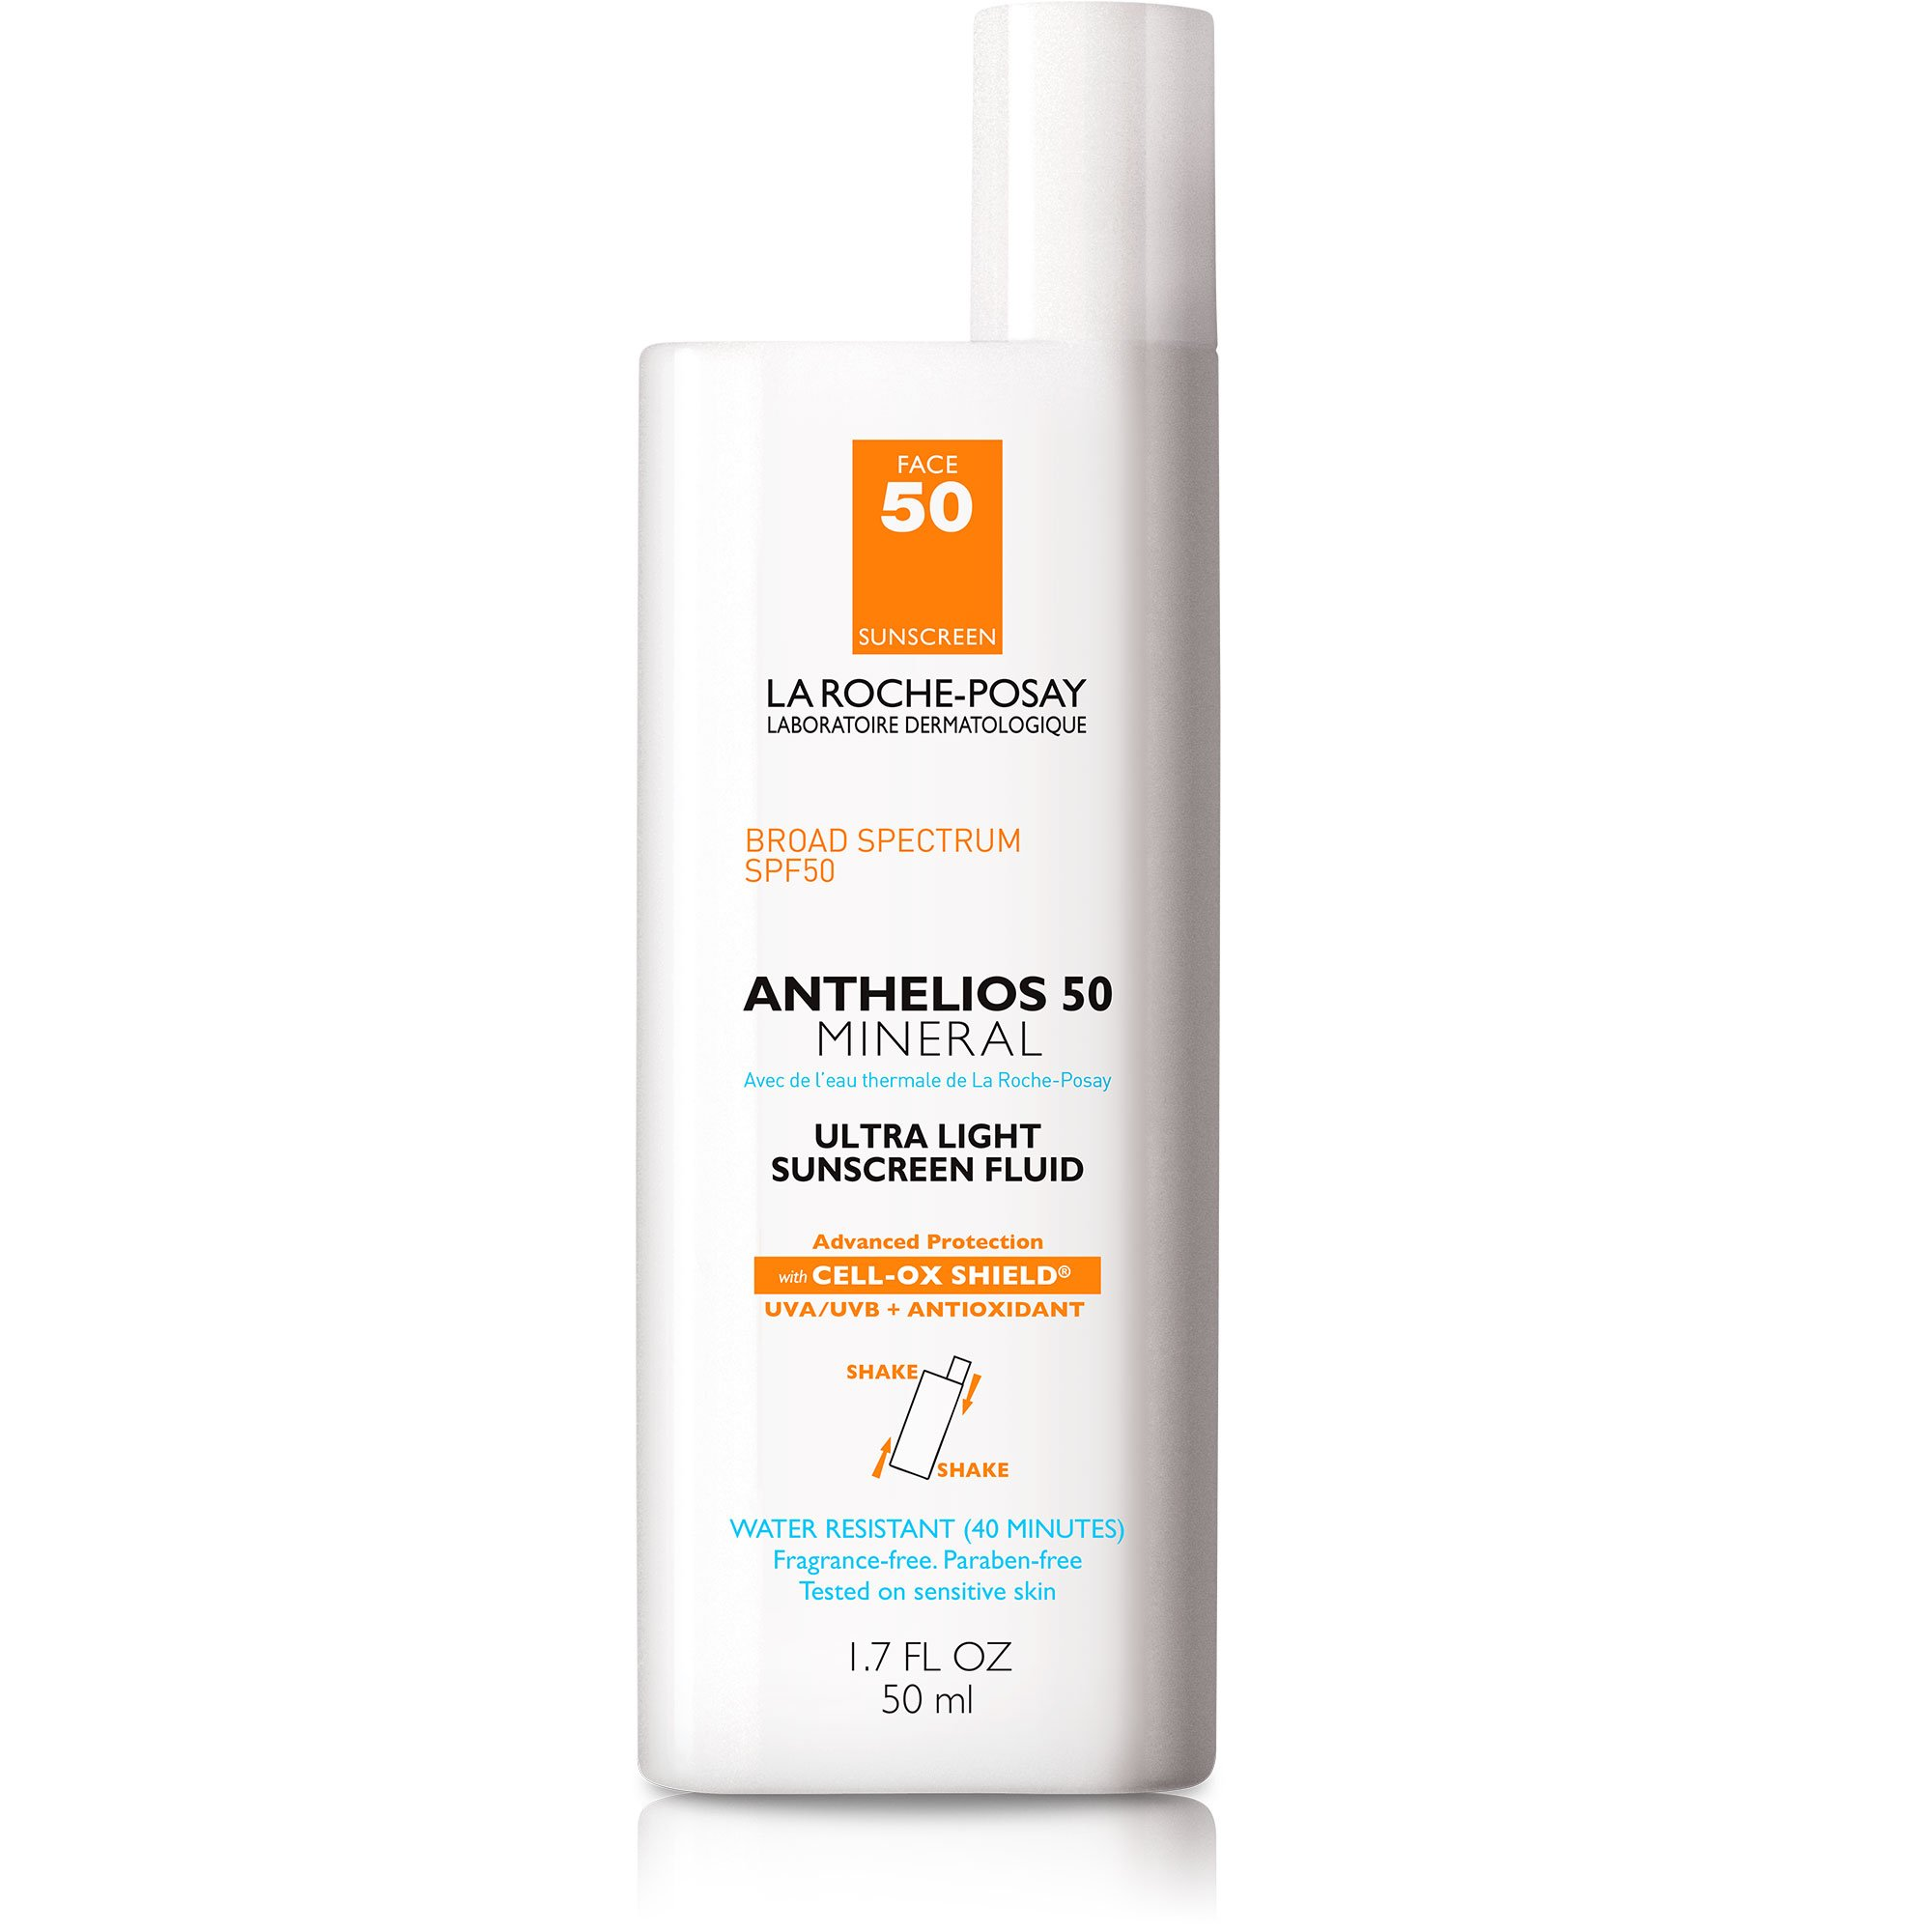 La Roche-Posay Anthelios Mineral Ultra-Light Fluid Broad Spectrum SPF 50, Face Sunscreen with Zinc Oxide and Titanium Dioxide, Oil-Free , 1.7 Fl. Oz.